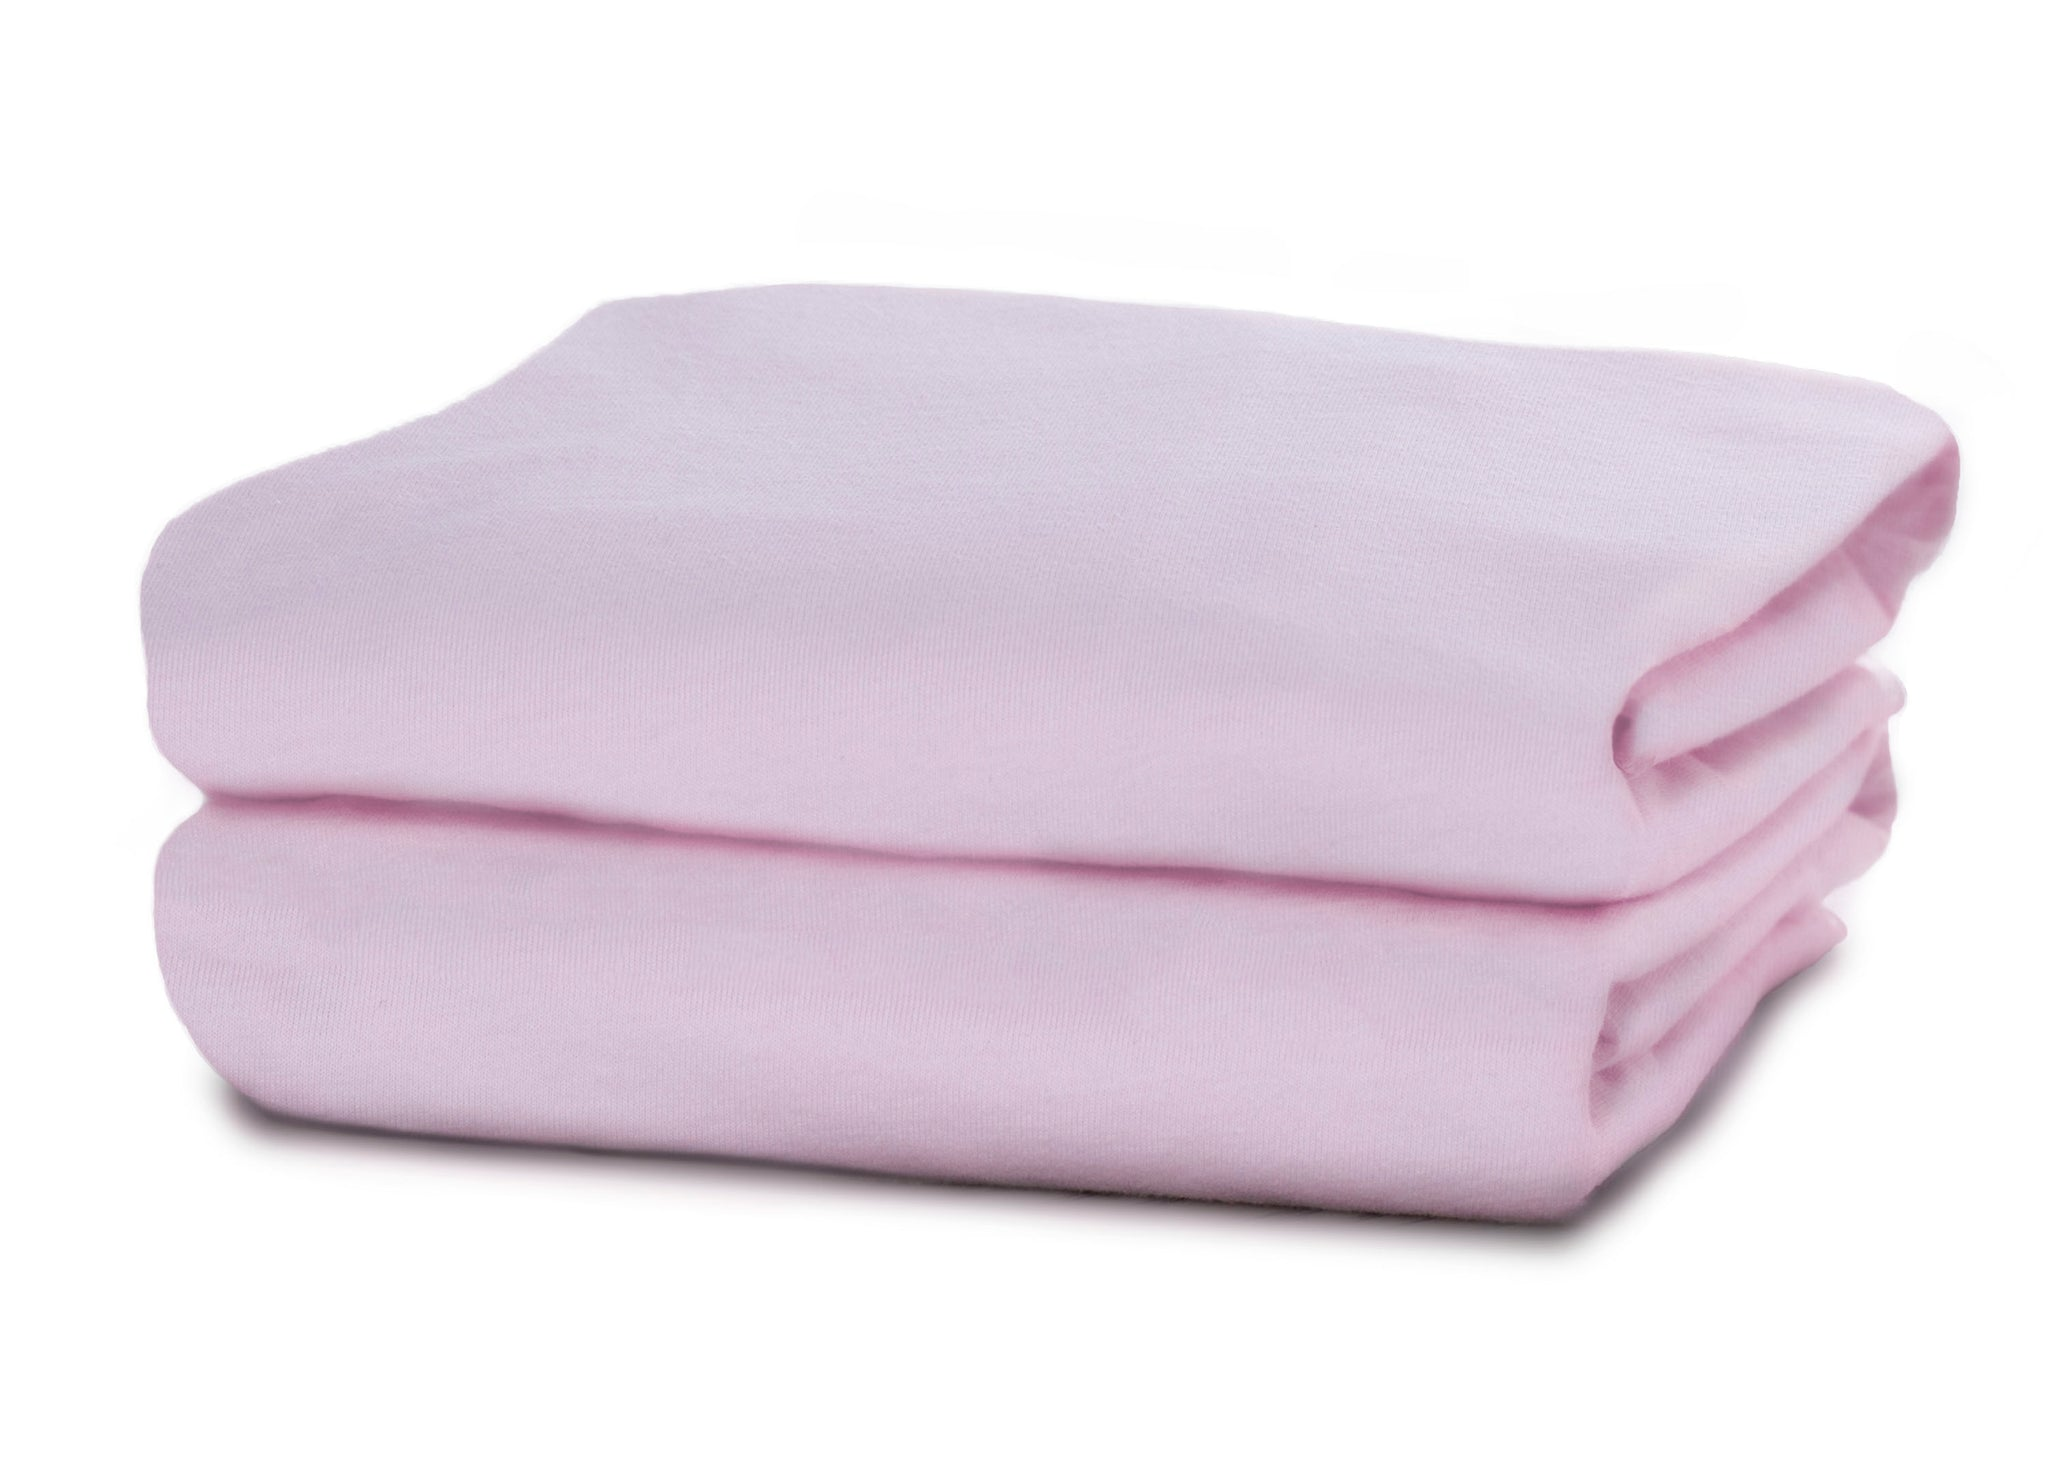 Delta Children Pink (654) Fitted Crib Sheet Set – 2 Pack Folded View